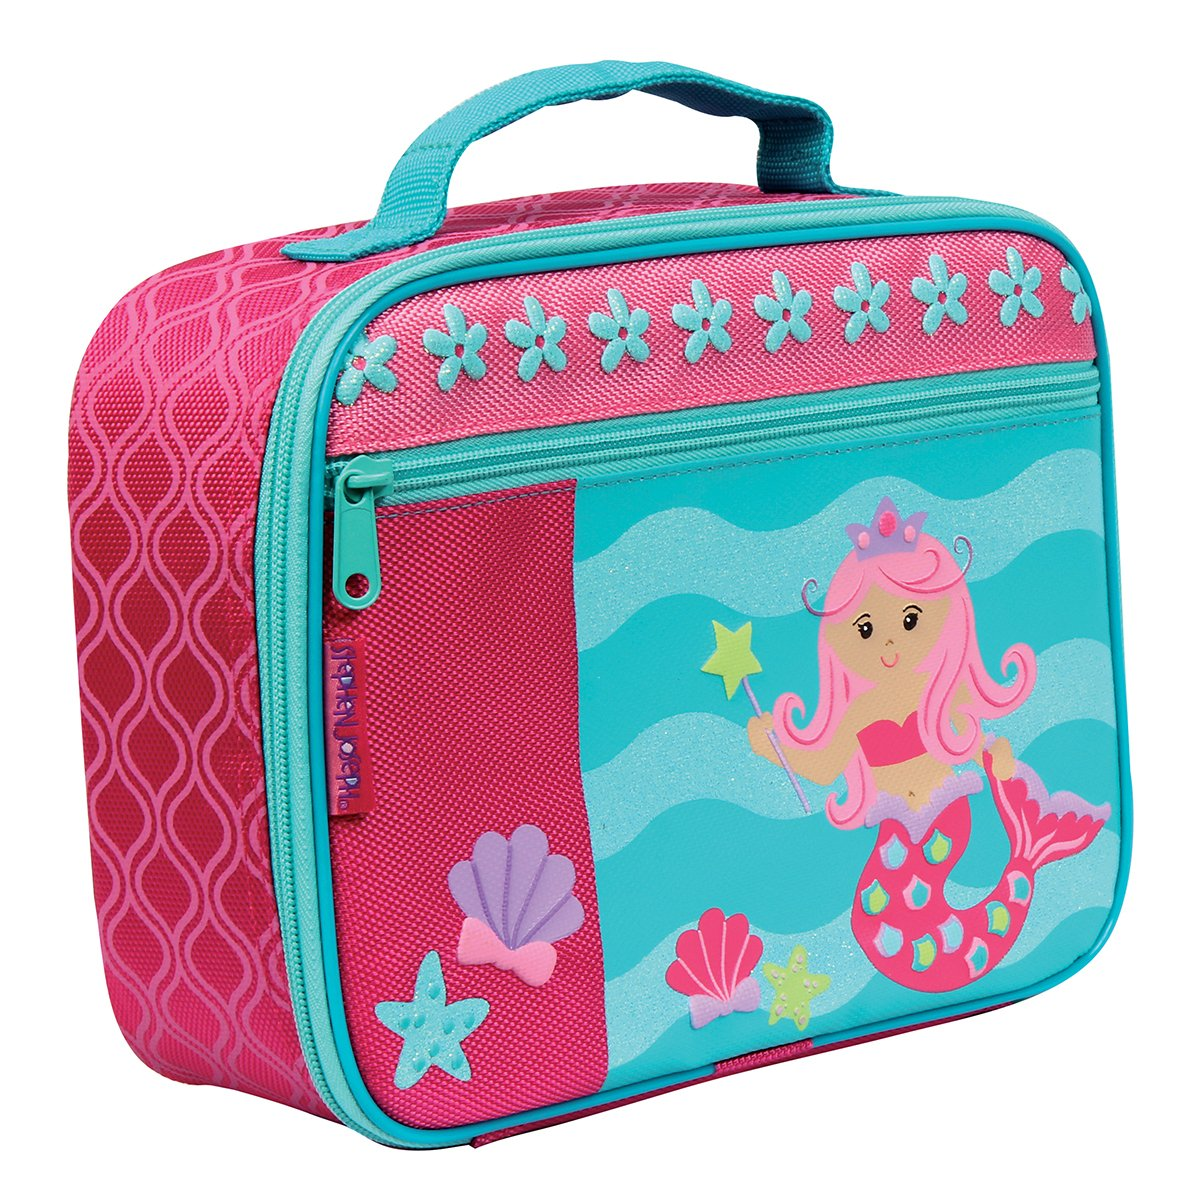 Amazon.com: Classic Lunch Box, Mermaid: Kitchen & Dining